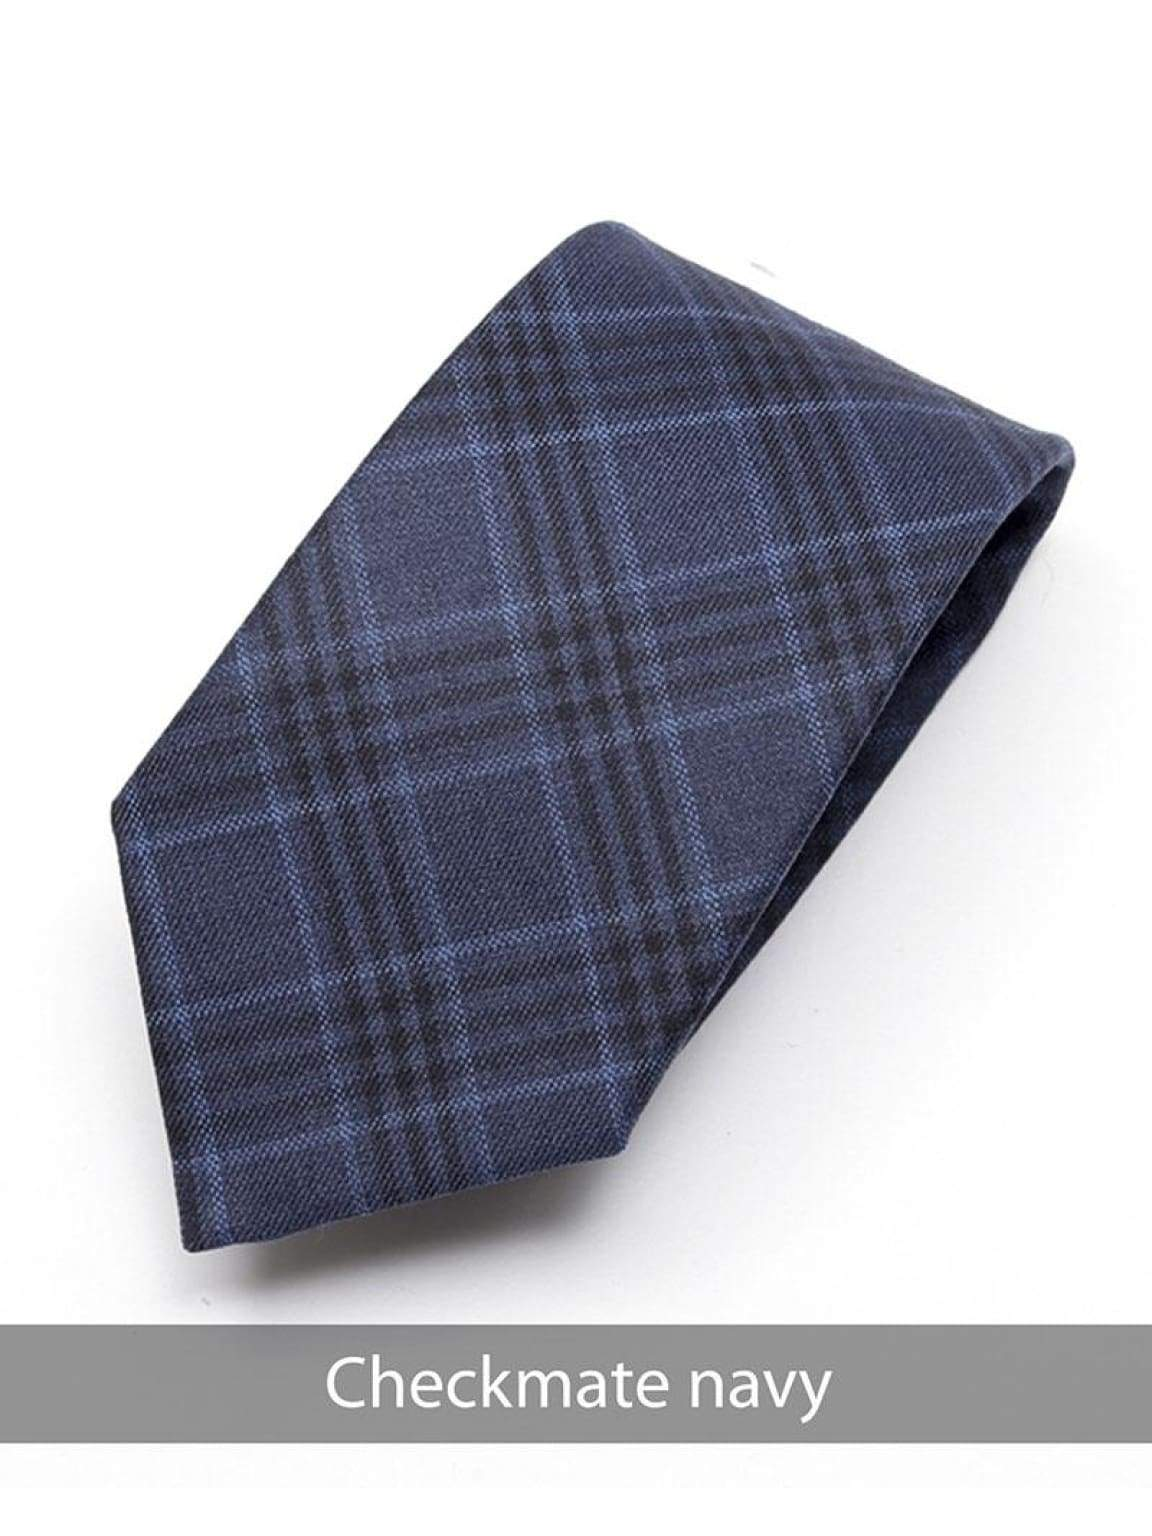 Heirloom Checkmate Mens Navy Check Tie - Accessories